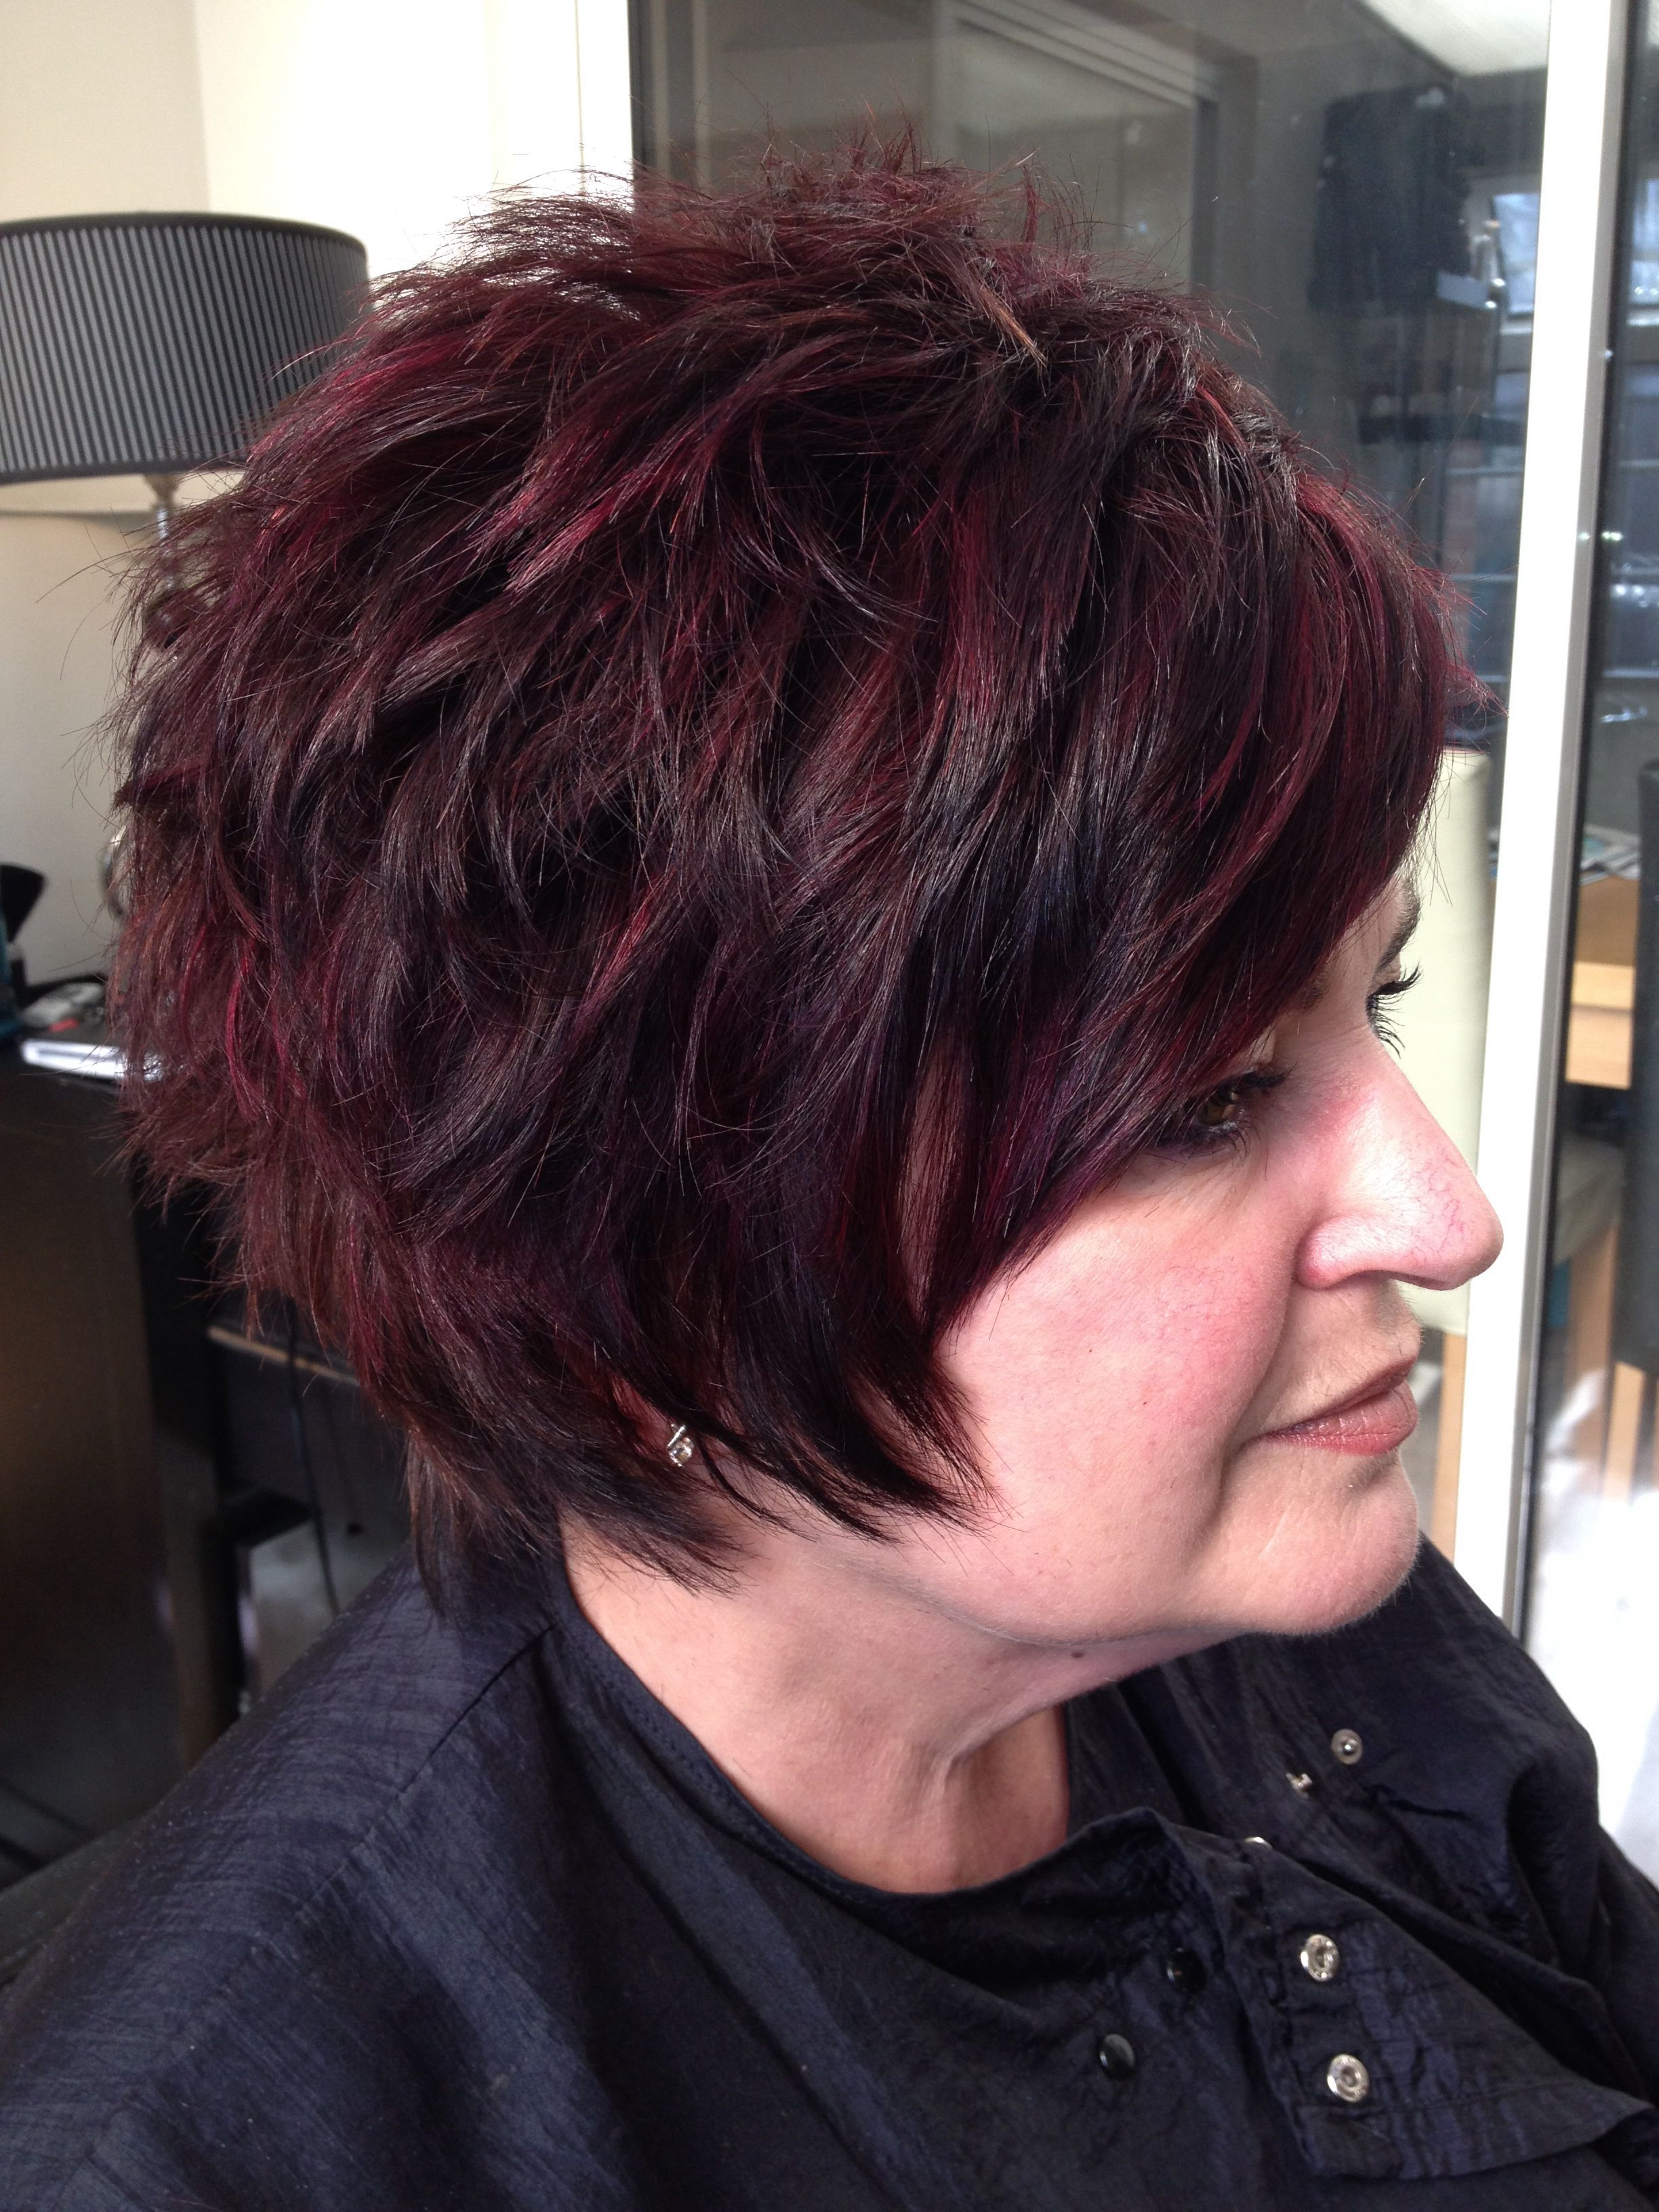 Choppy and lots of texture olet red hls with an auburn